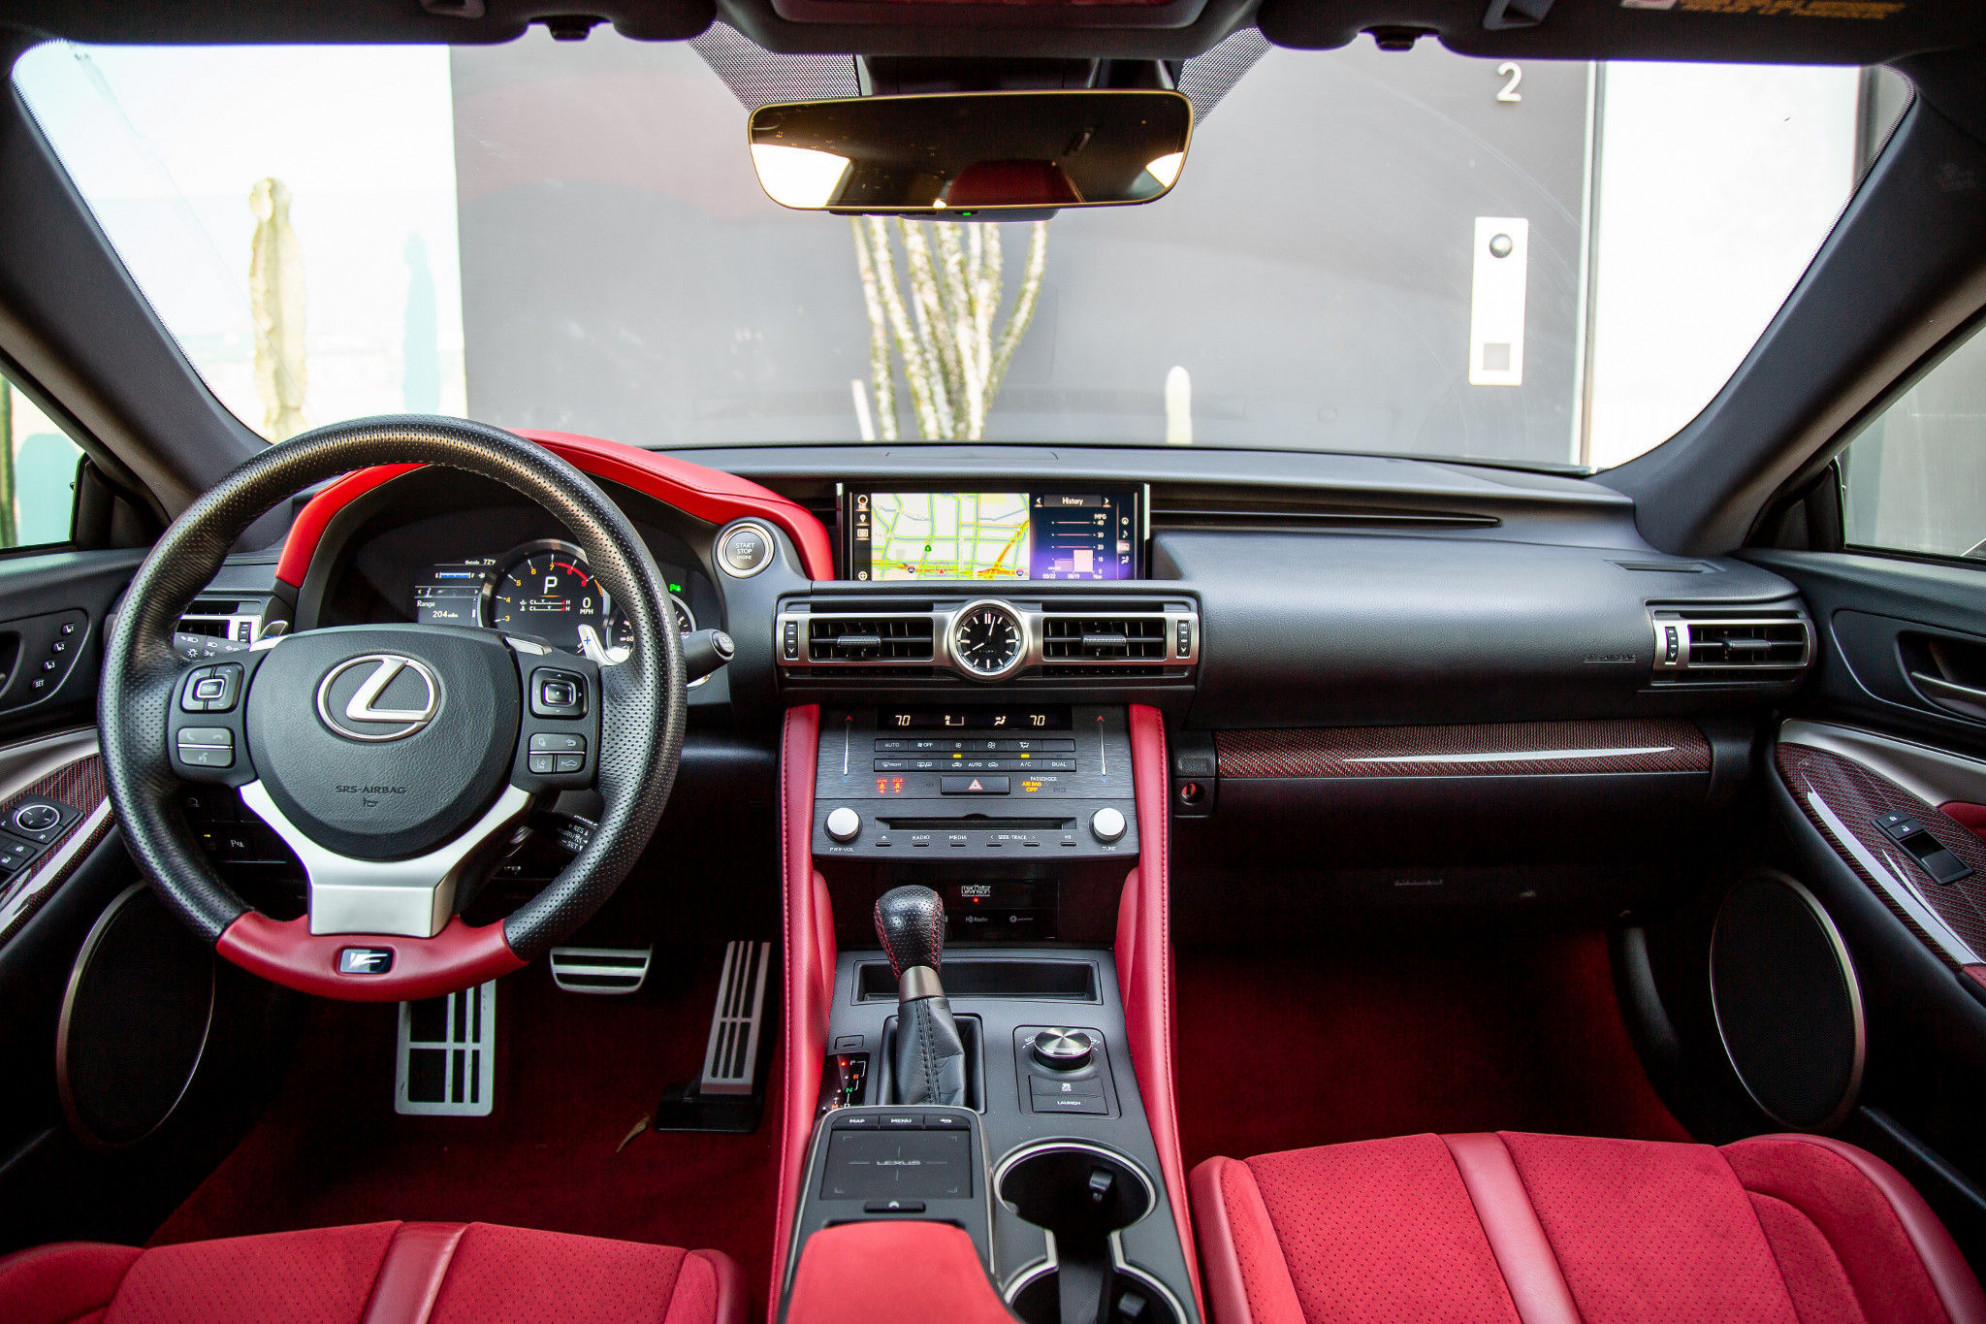 12 Lexus RC F Interior Review - Seating, Infotainment, Dashboard ..